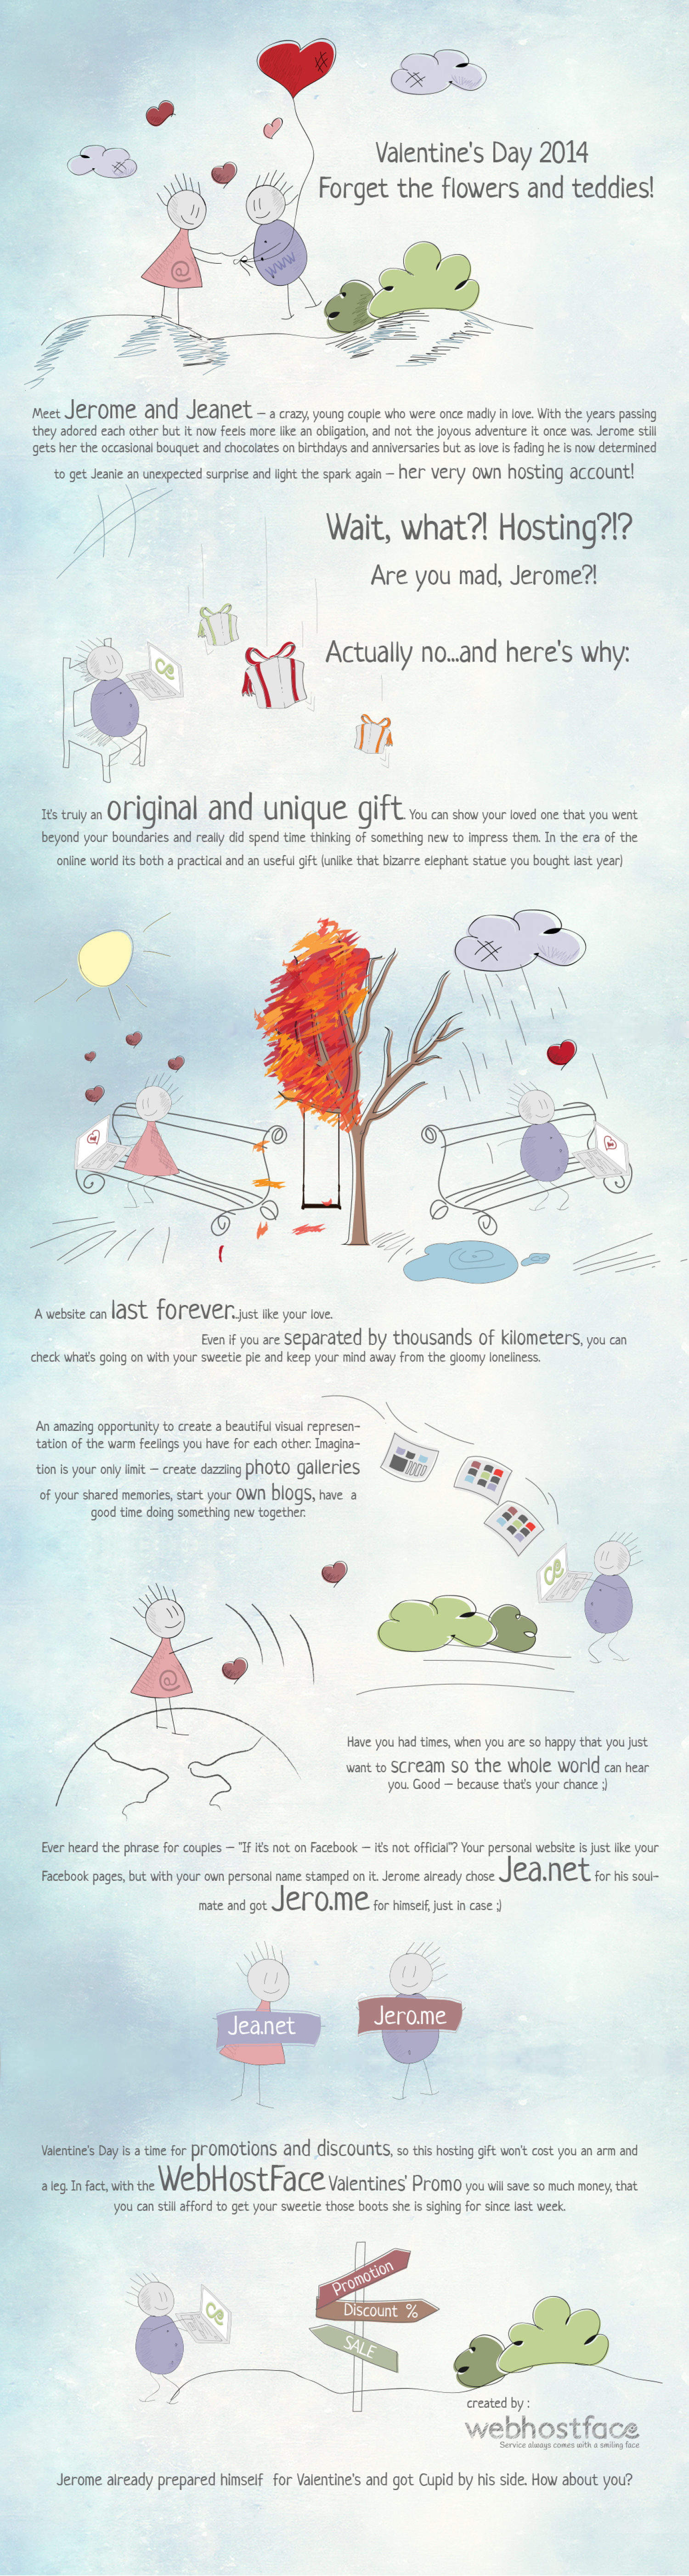 6 Reasons Reasons why Web hosting is the Perfect Valentines Day gift Infographic